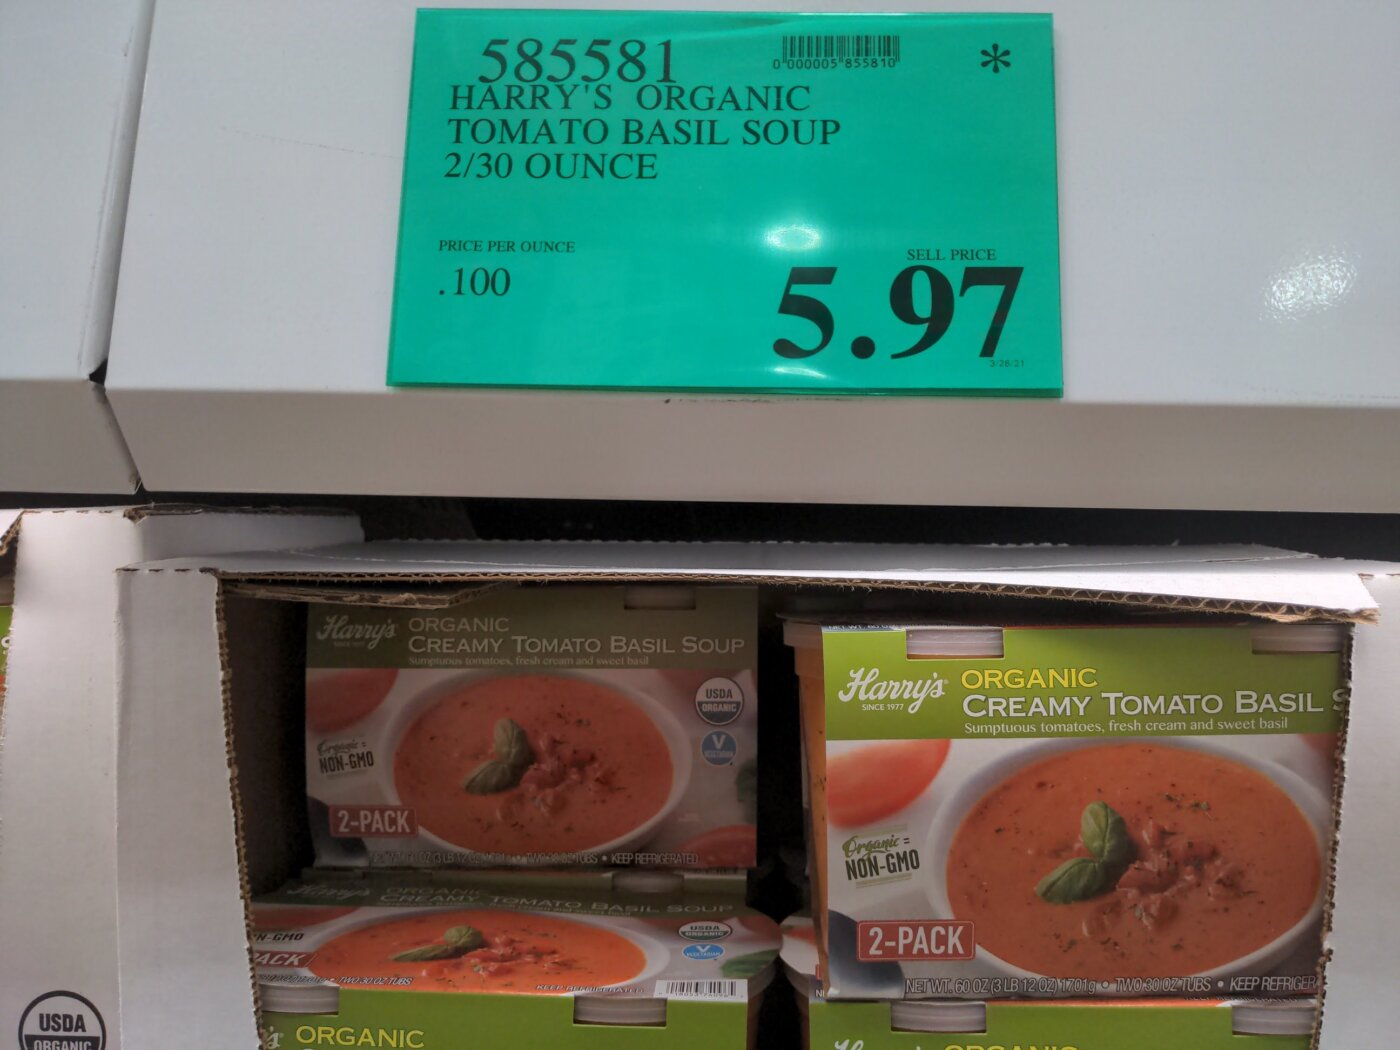 HarrysOrganicTomatoBasilSoup-585581